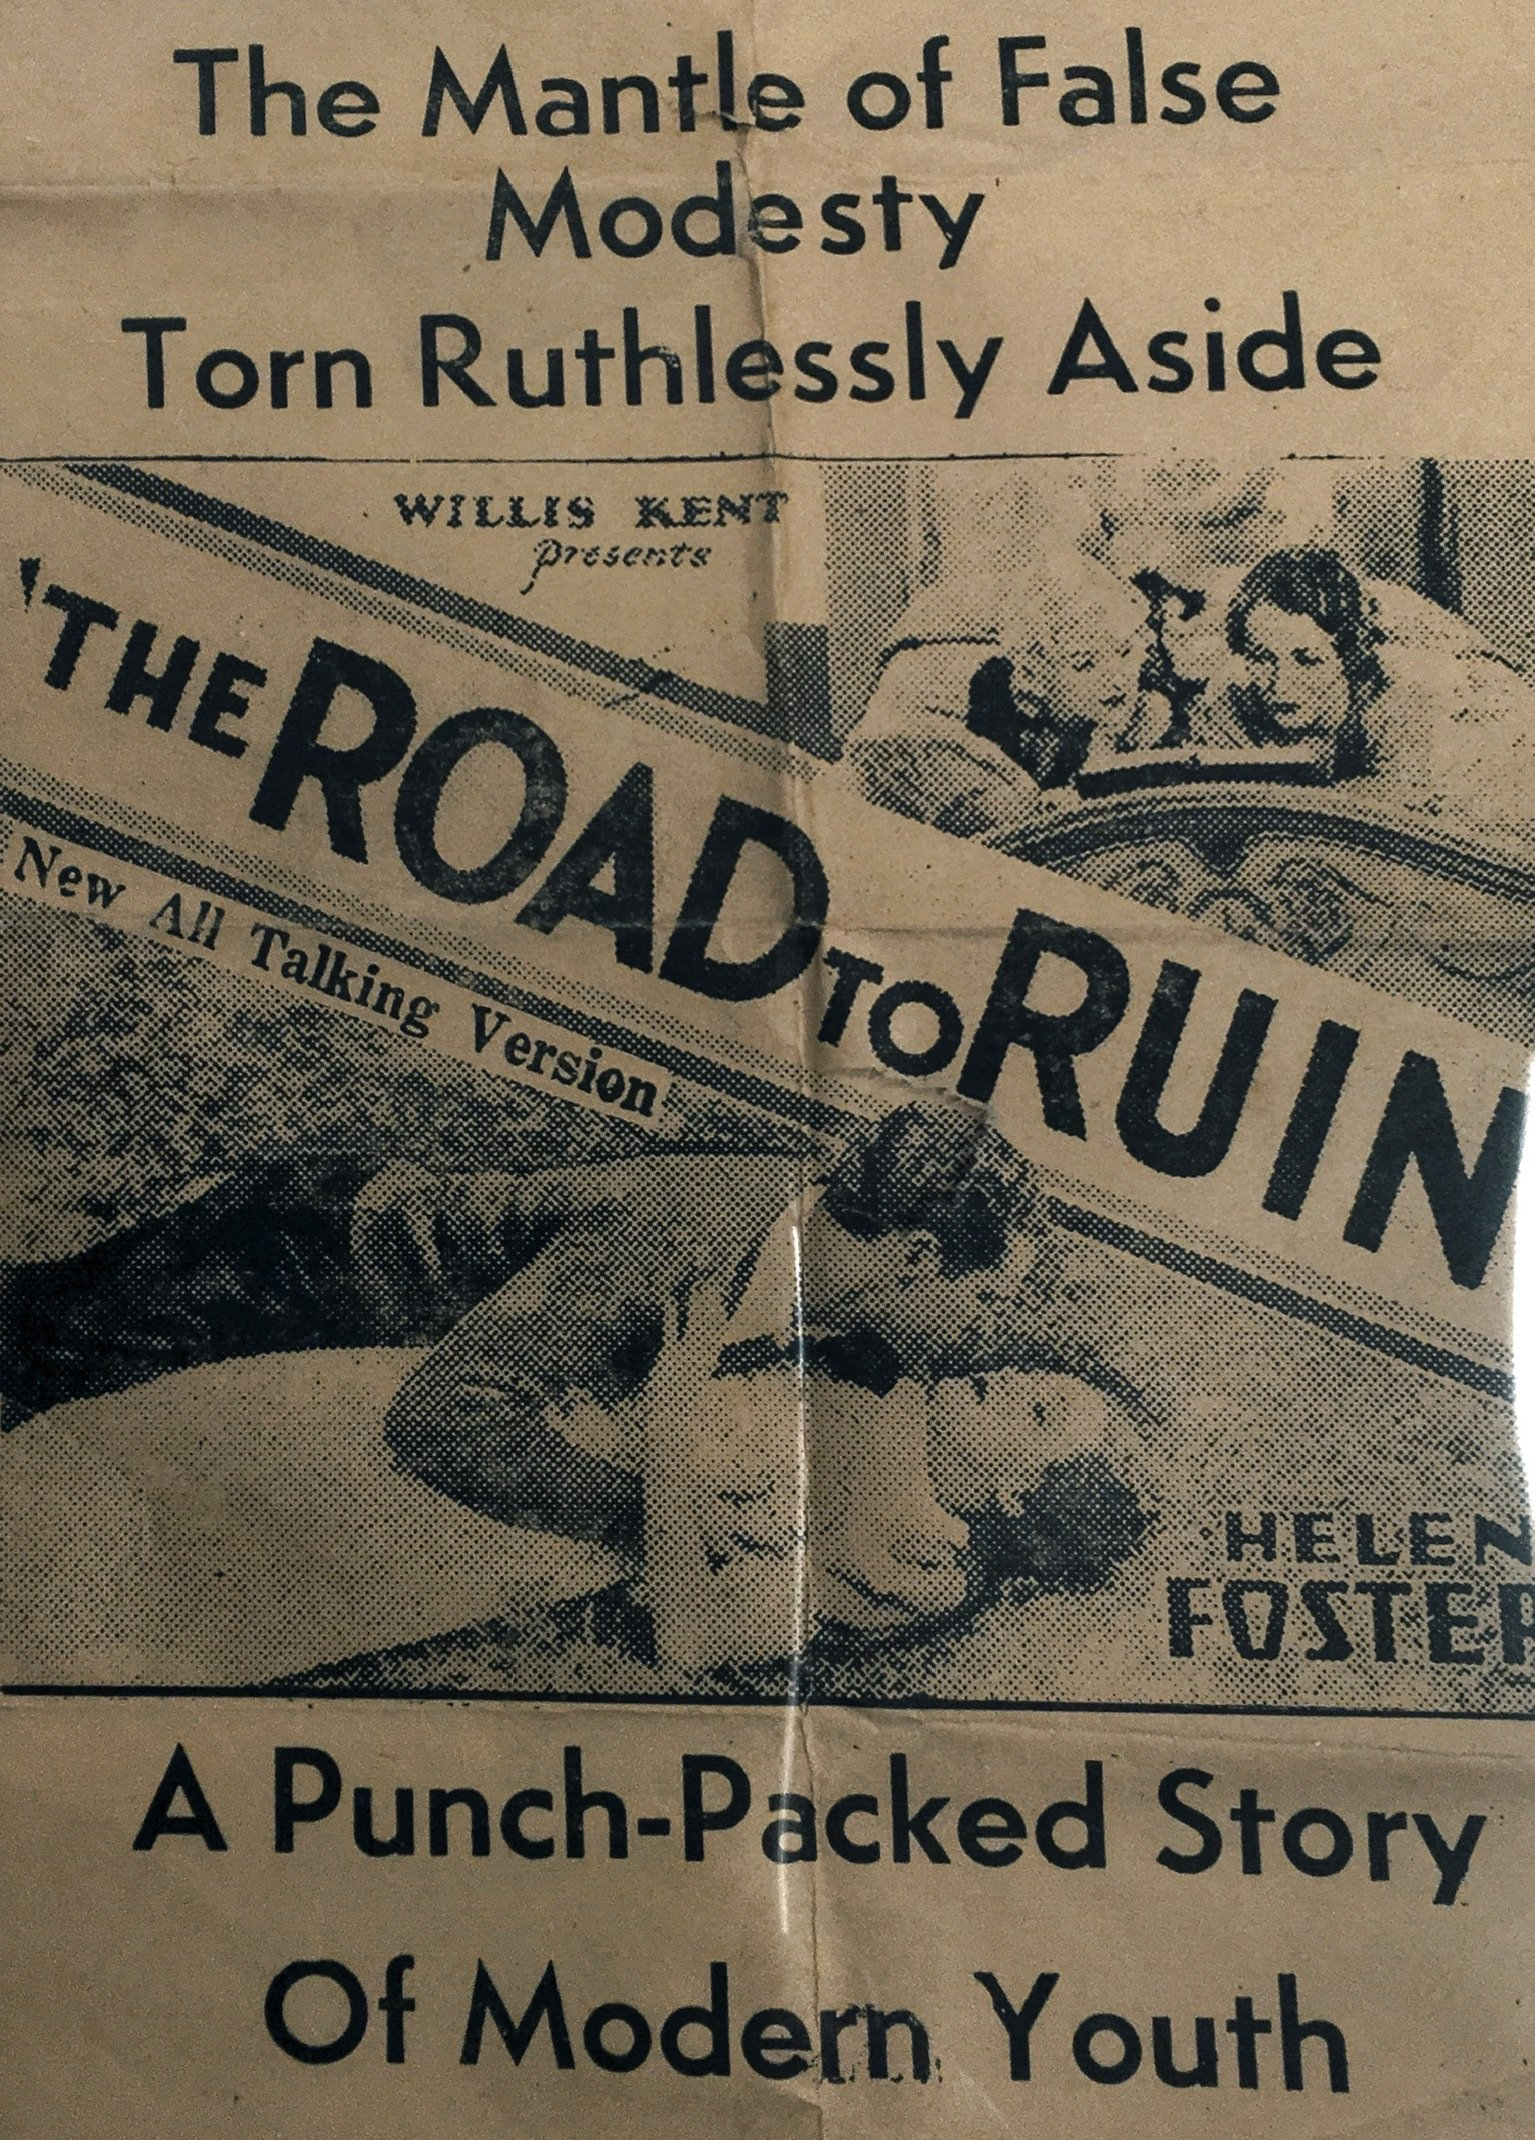 Princess Theatre flyer circa 1934. The Road to Run was a film about a young girl whose life is ruined by sex and drugs. It was boycotted by the Catholic Church.